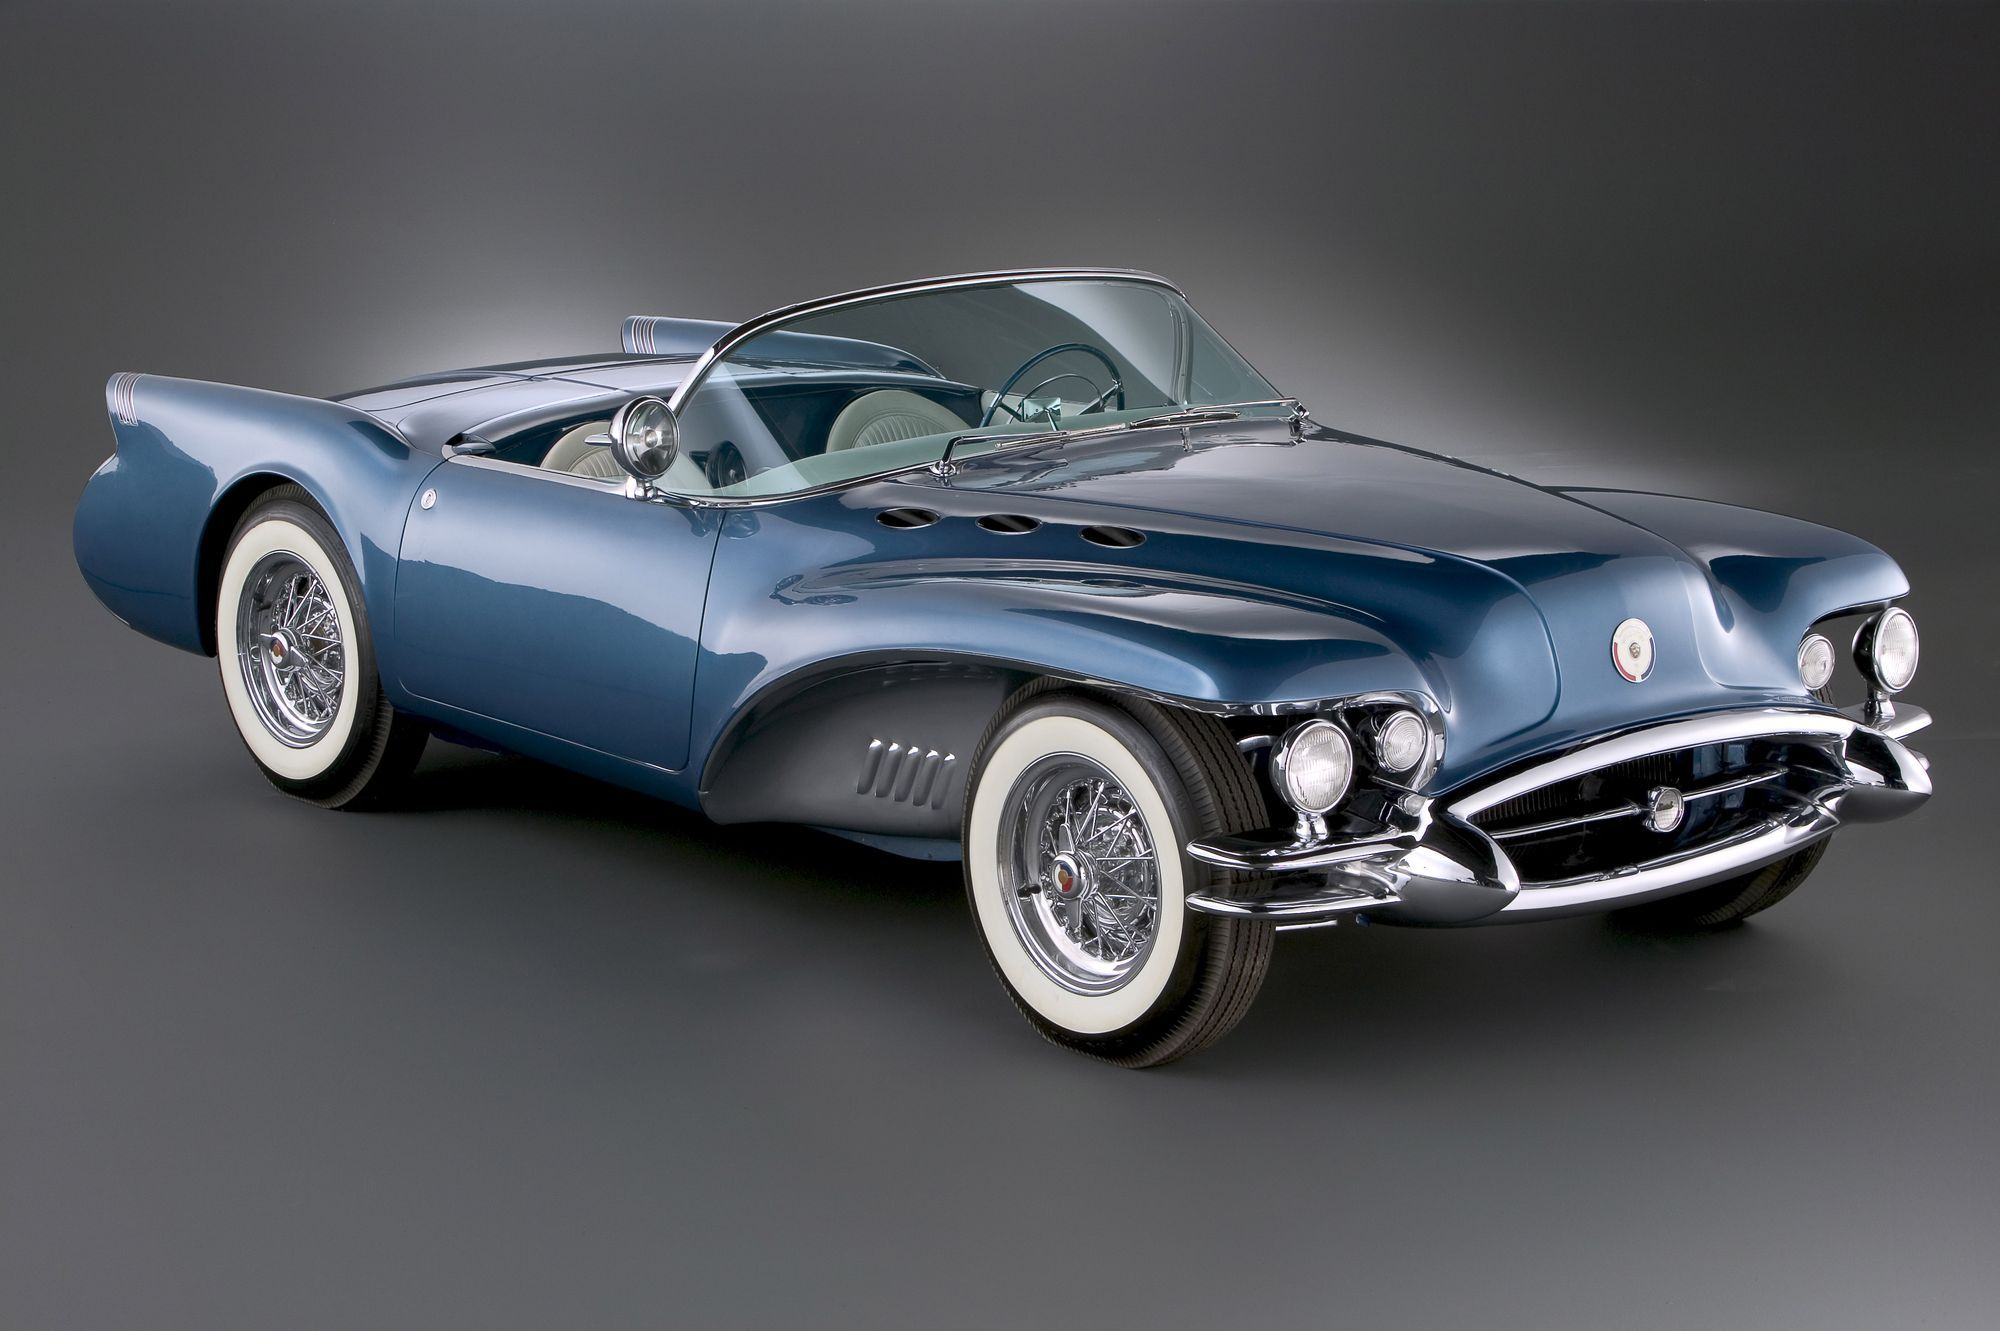 Vintage Experimental Cars Google Search CONCEPT CARS - Classic car search sites